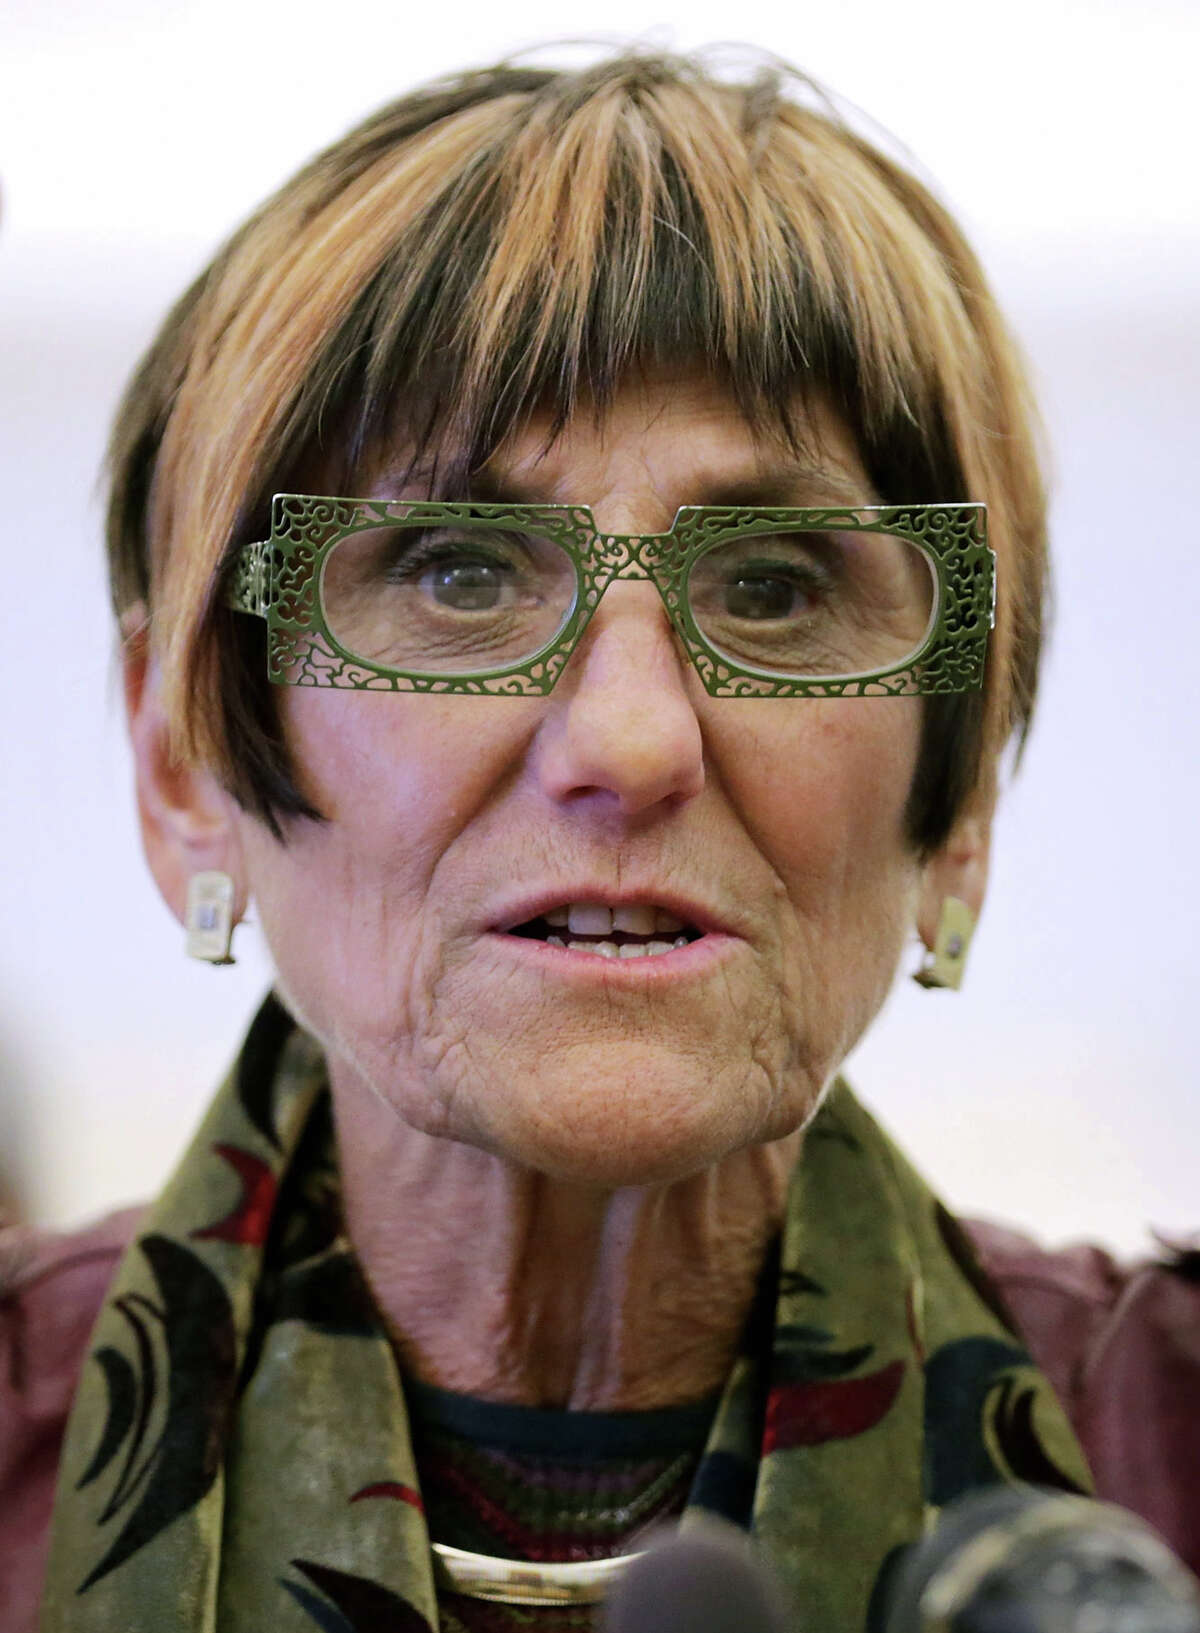 """Rosa DeLauro Rep. Rosa DeLauro (D-CT) is leaving her mark on the Constitution State after fighting for improved education, healthcare and food safety, among other causes. She is the state's """"longest serving female congressional representative,"""" according to the Connecticut Women's Hall of Fame. DeLauro was also the first woman in Connecticut to spearhead a statewide campaign in 1979. Her efforts paid off: she was Chief of Staff for seven years once Senator Christopher Dodd was elected."""